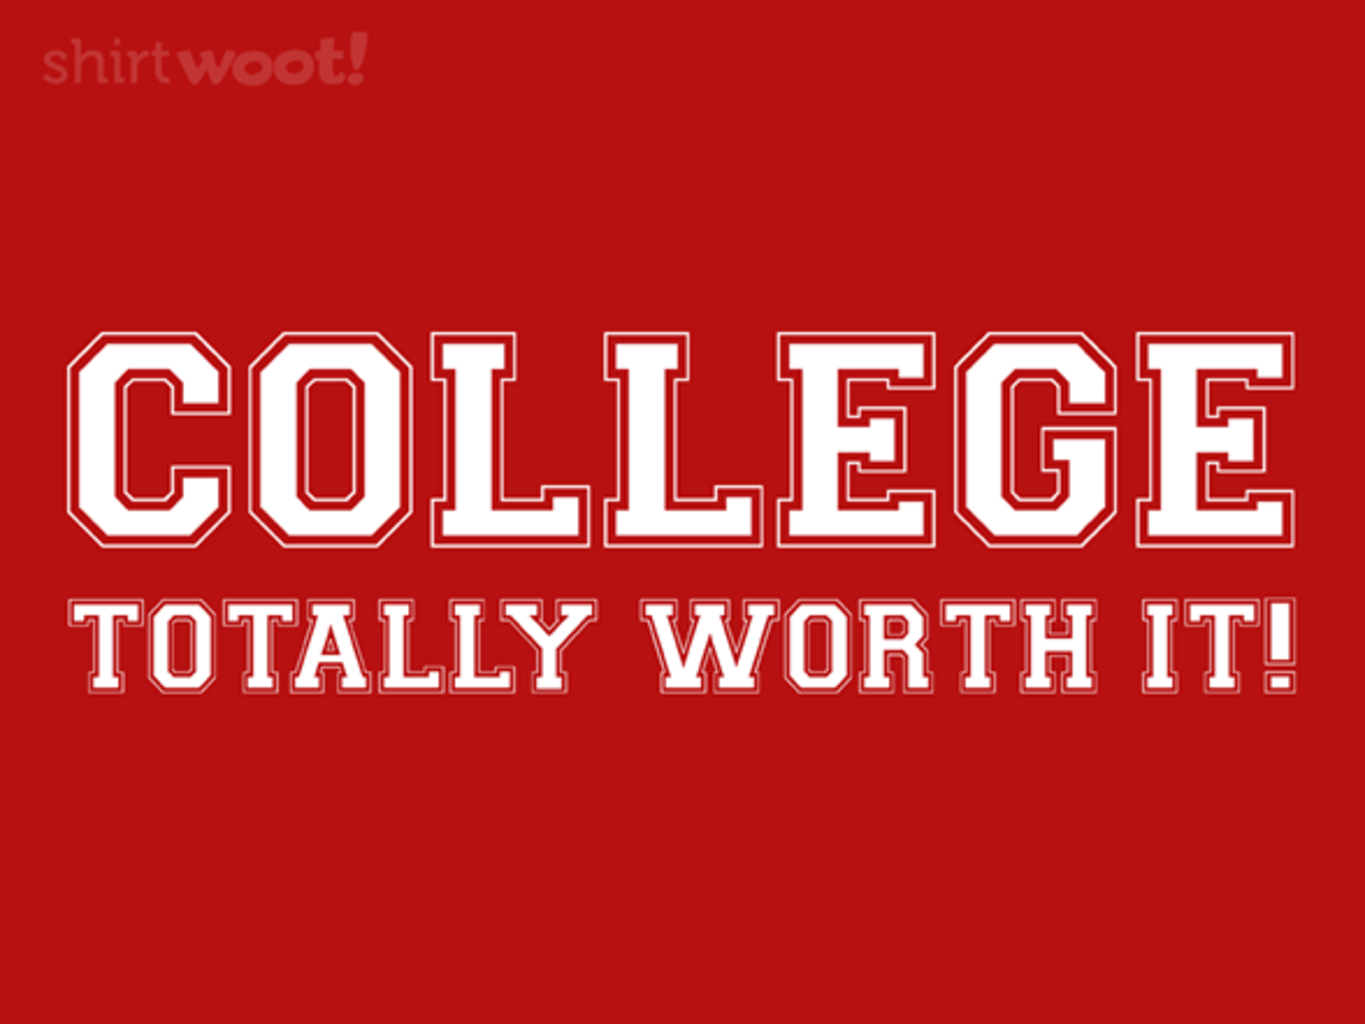 Woot!: COLLEGE...Totally Worth It!